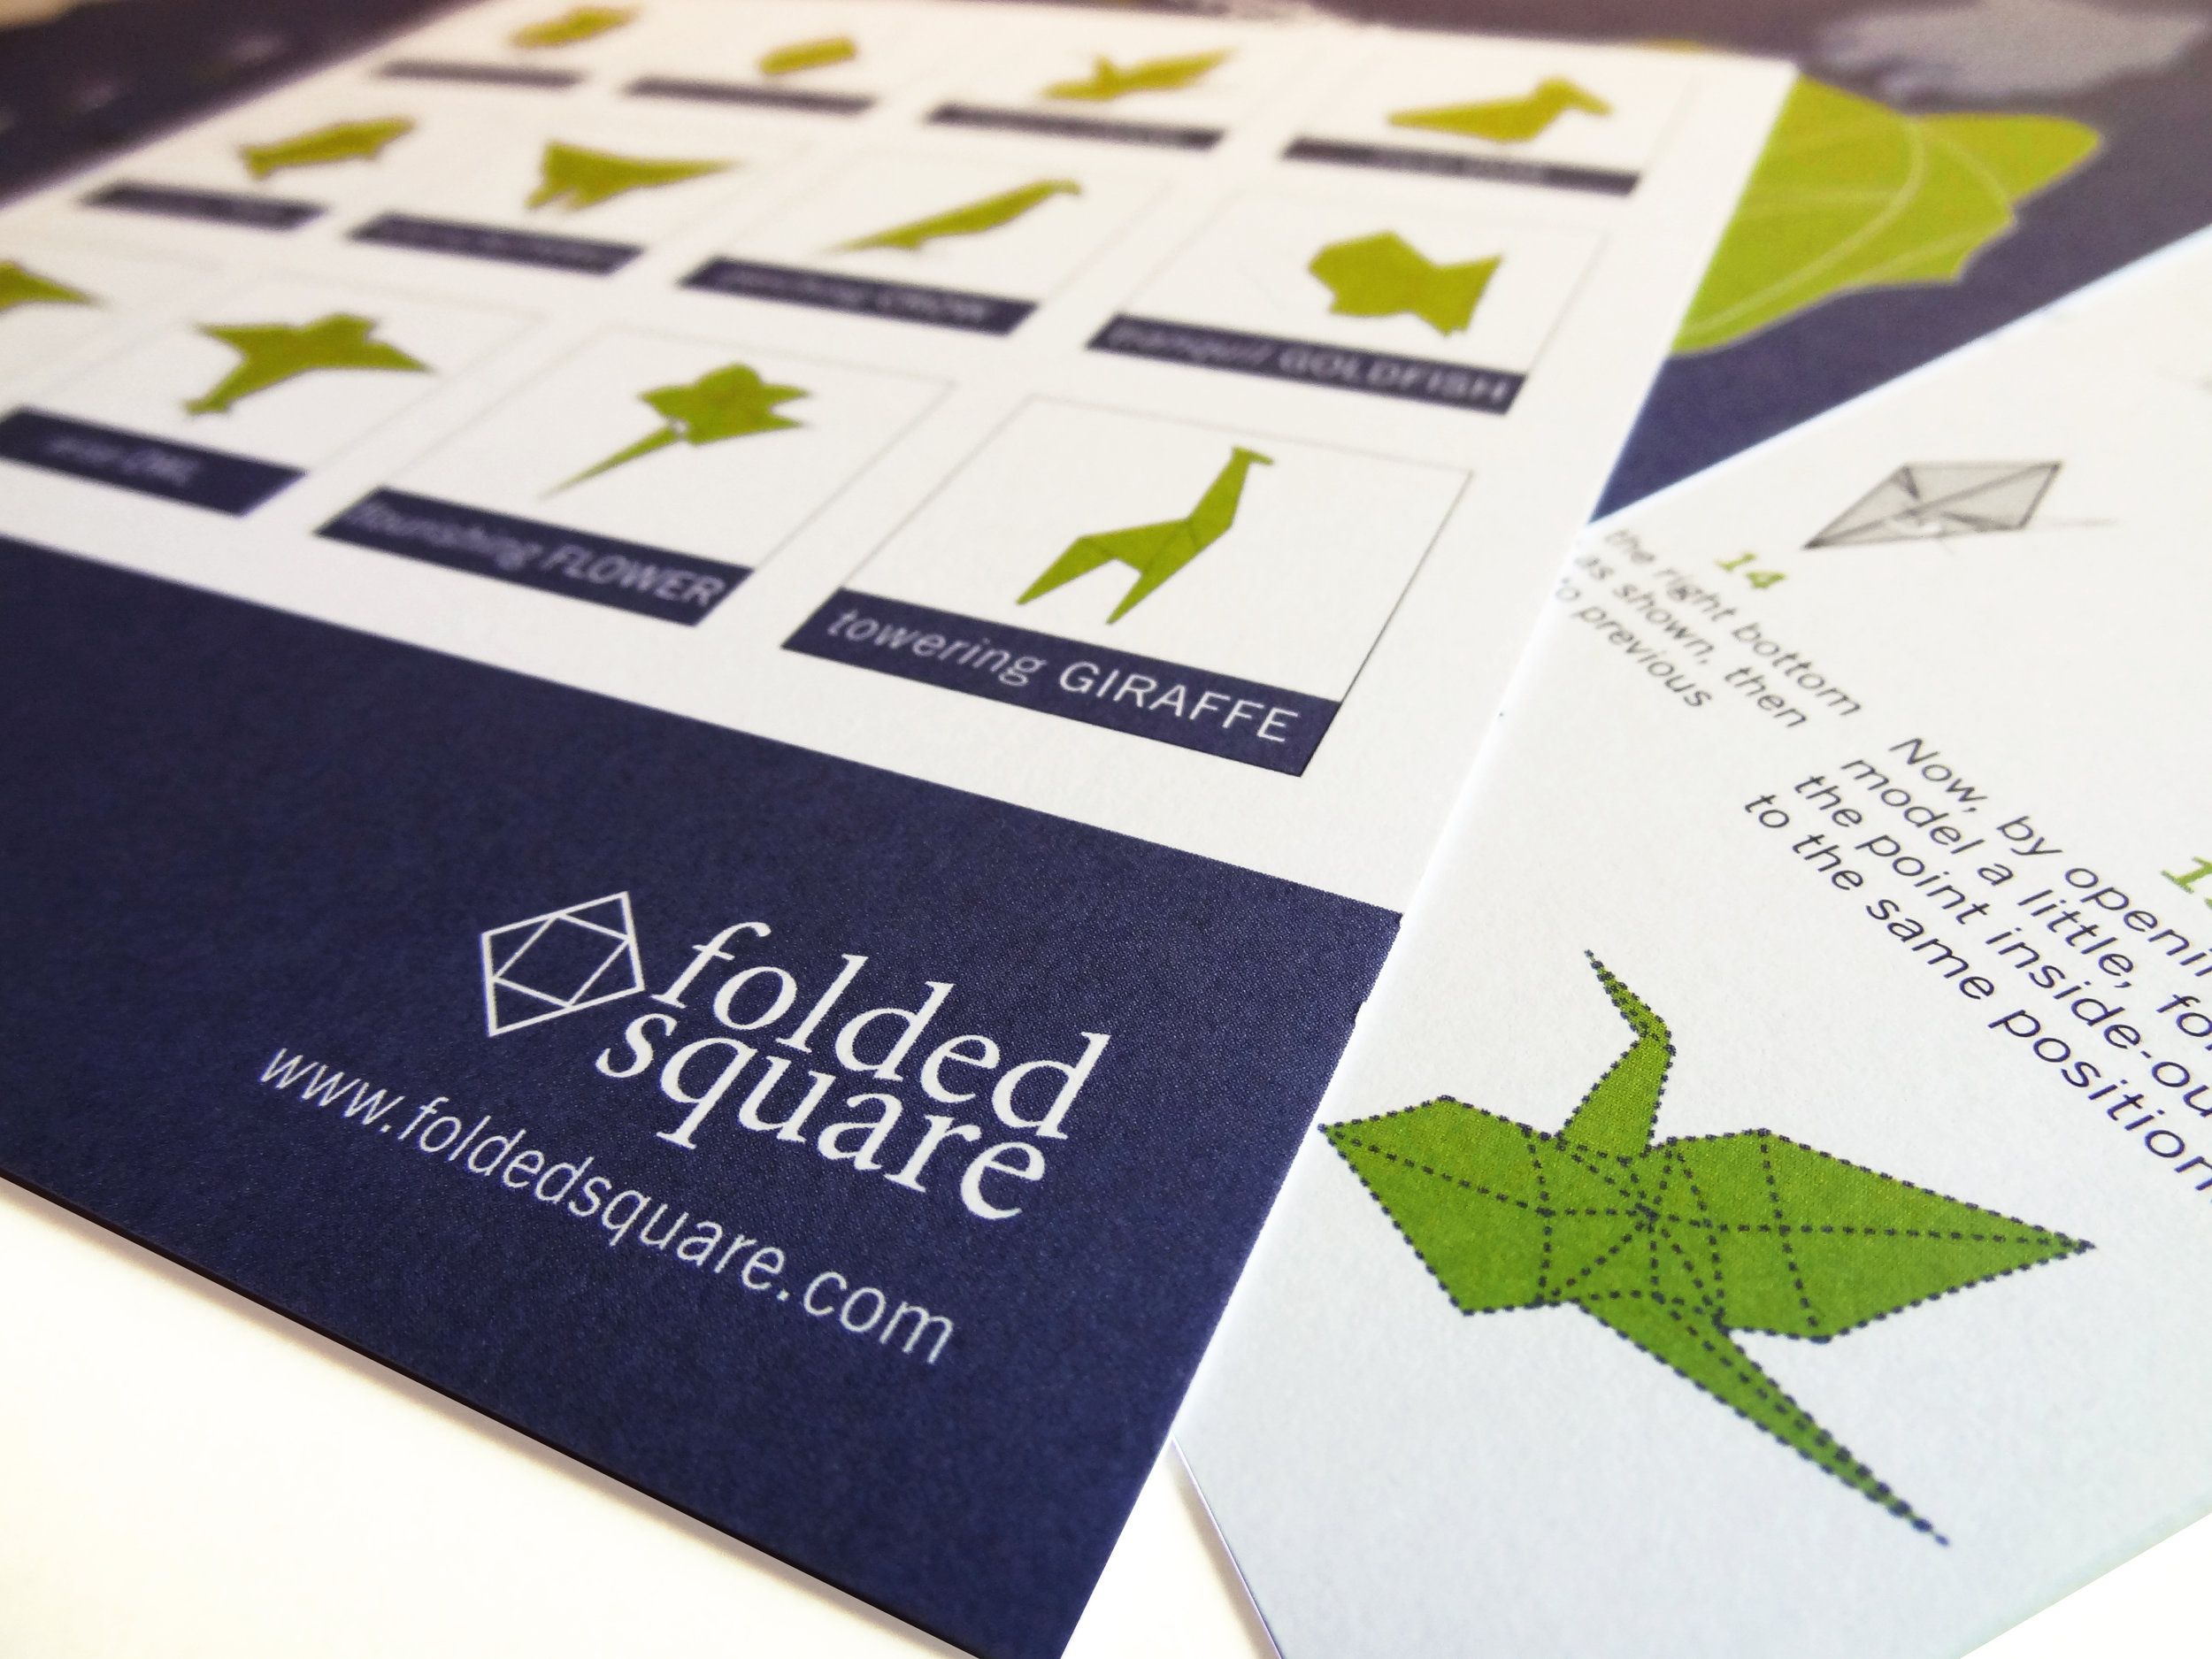 Animal Modelling Kits - Innovative fully-illustrated Origami modelling gift sets, made with sustainably sourced, FSC-certifed paper